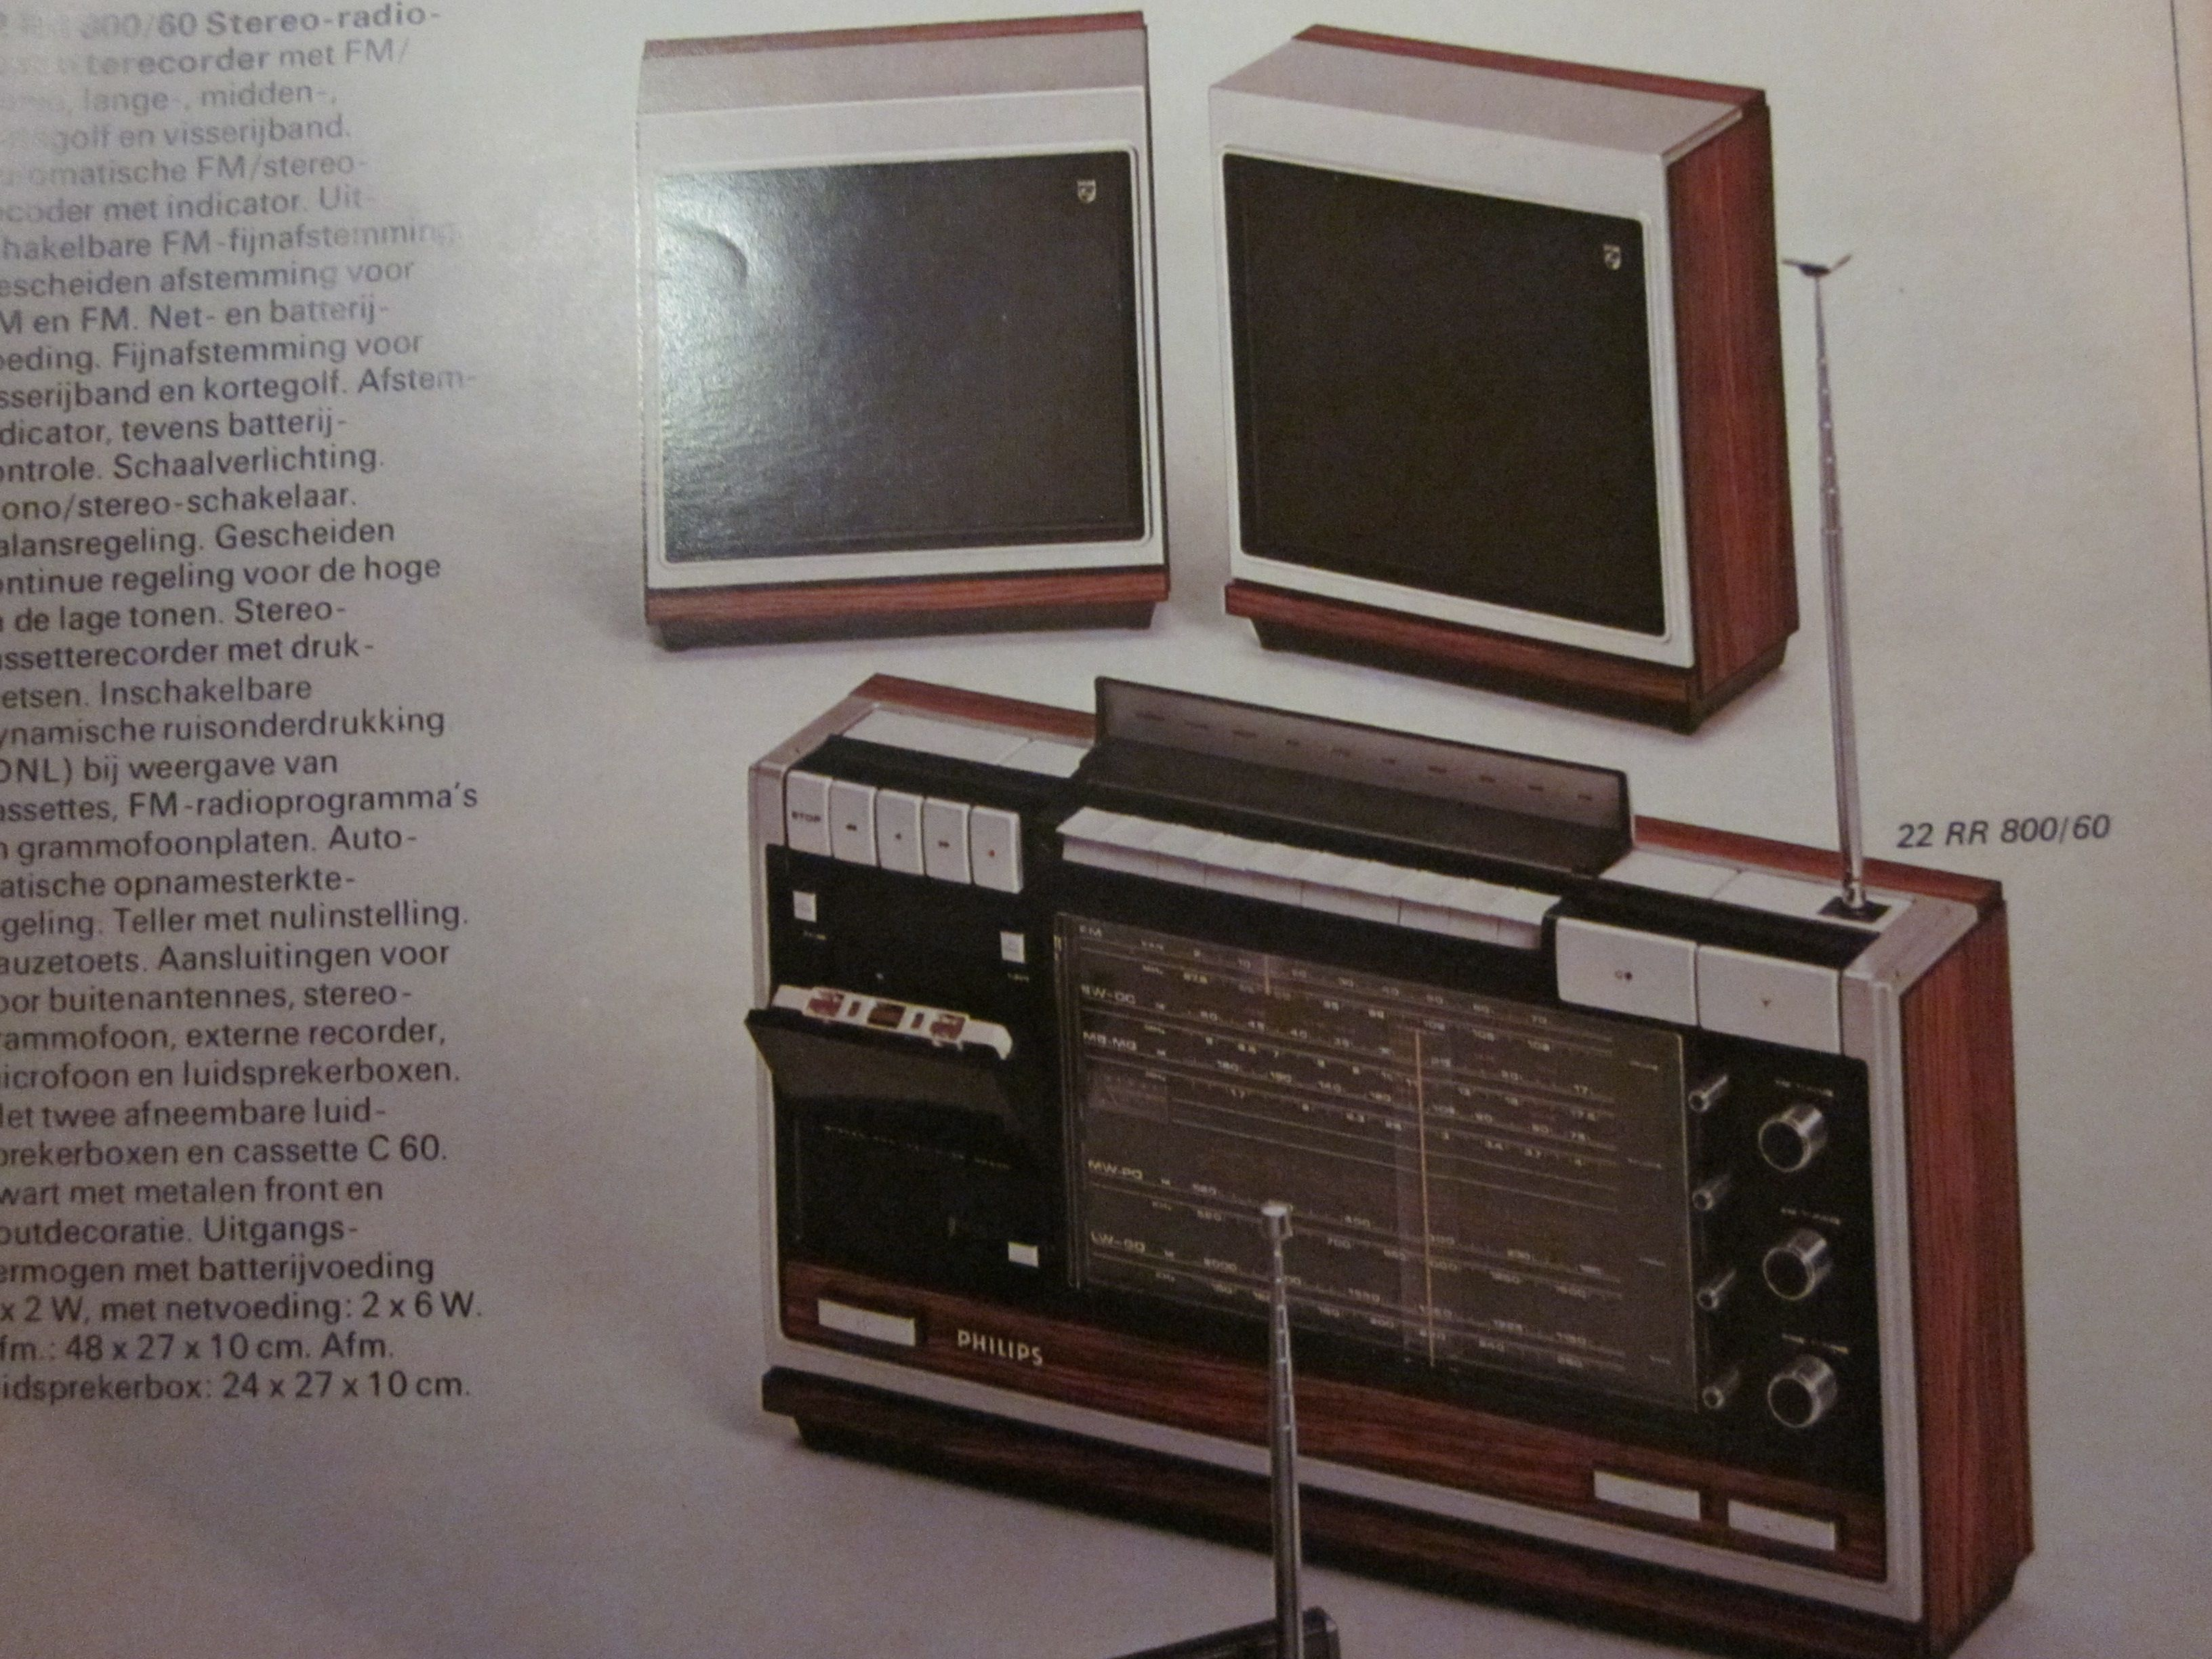 1972 in fact the first ghetto blaster Hoog laag